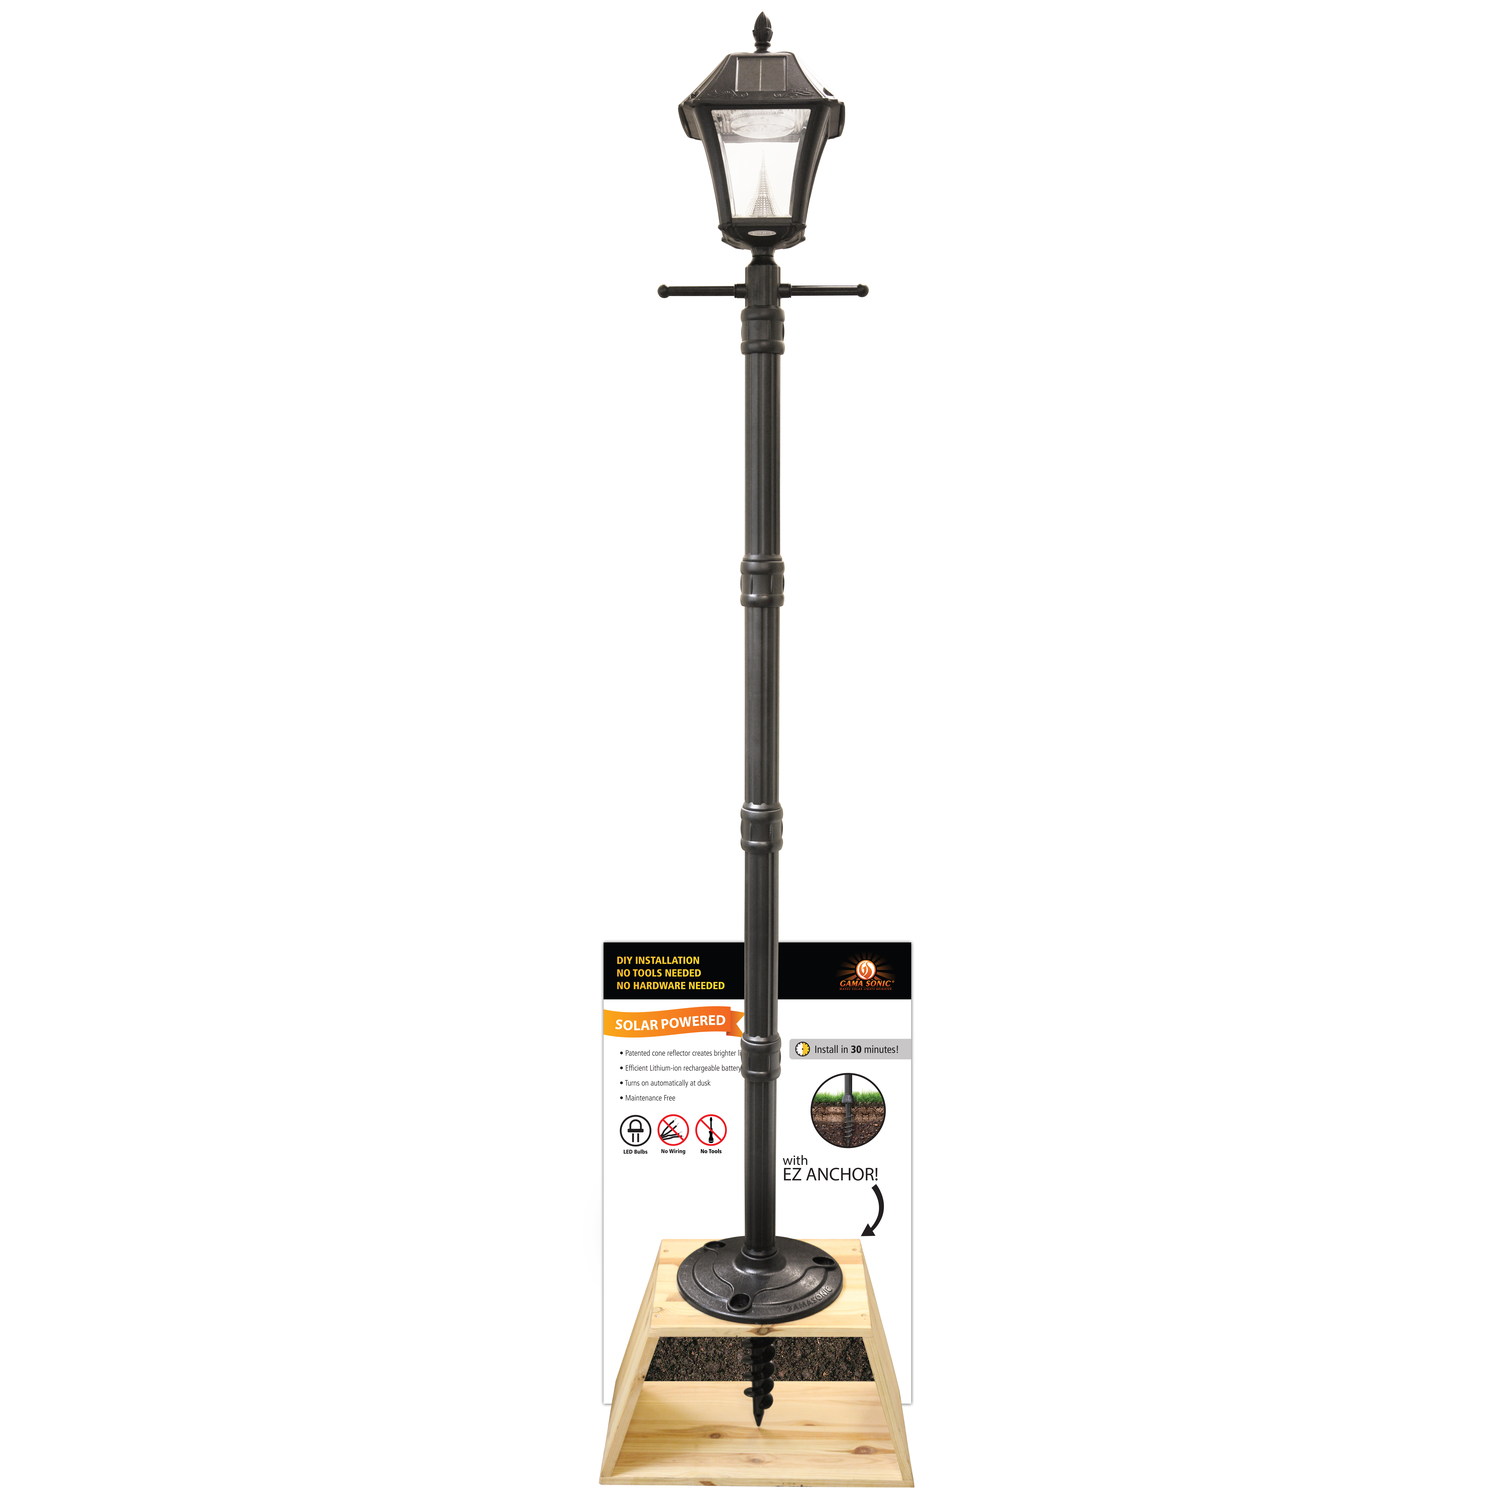 gama sonic baytown 2 black solar powered led post light and lamp post 1 pk ace hardware [ 1500 x 1500 Pixel ]